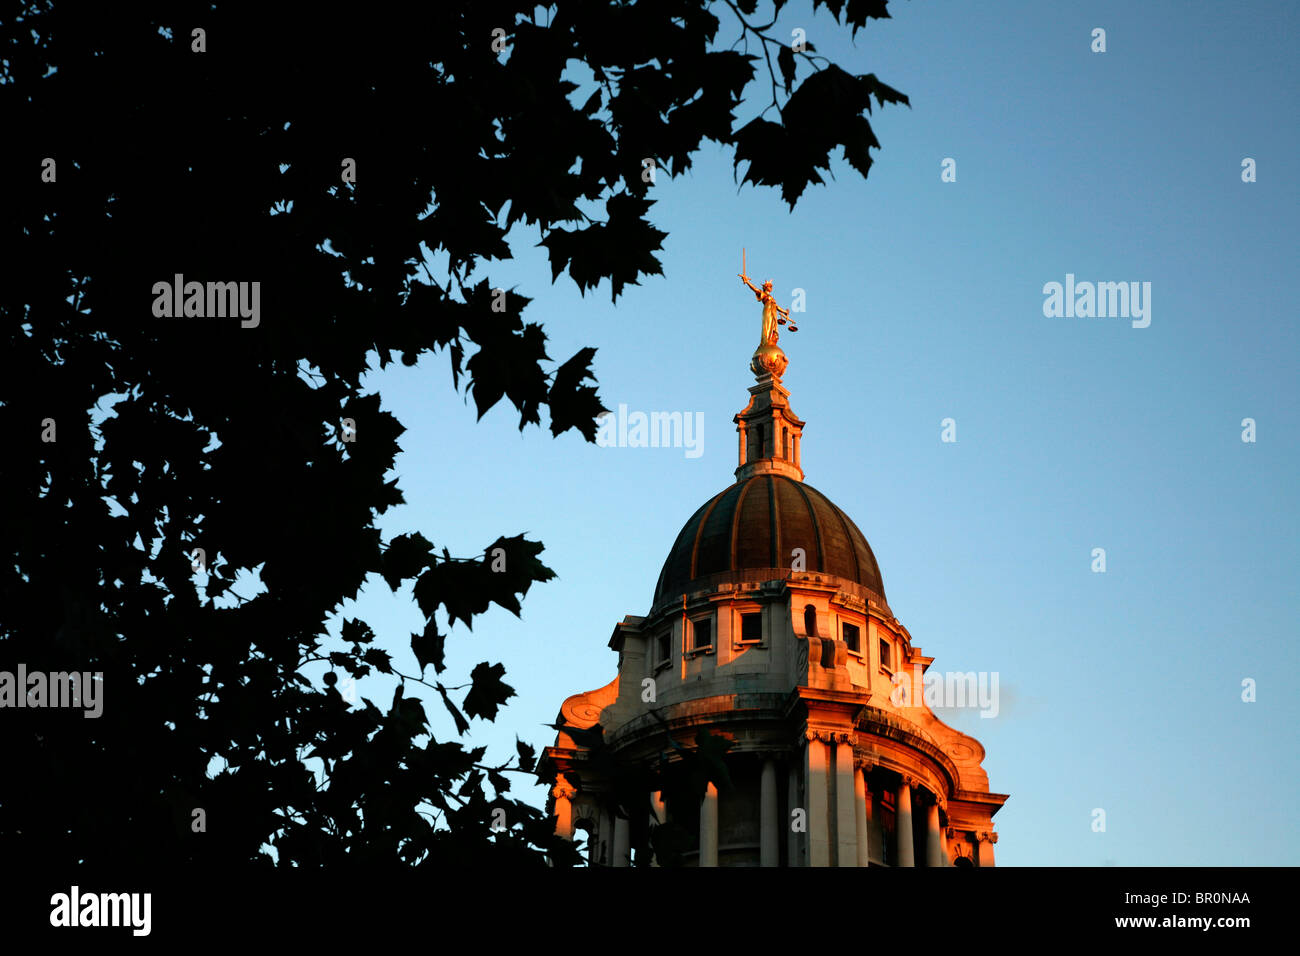 Justice statue stands atop the Old Bailey (Central Criminal Court), City of London, UK - Stock Image